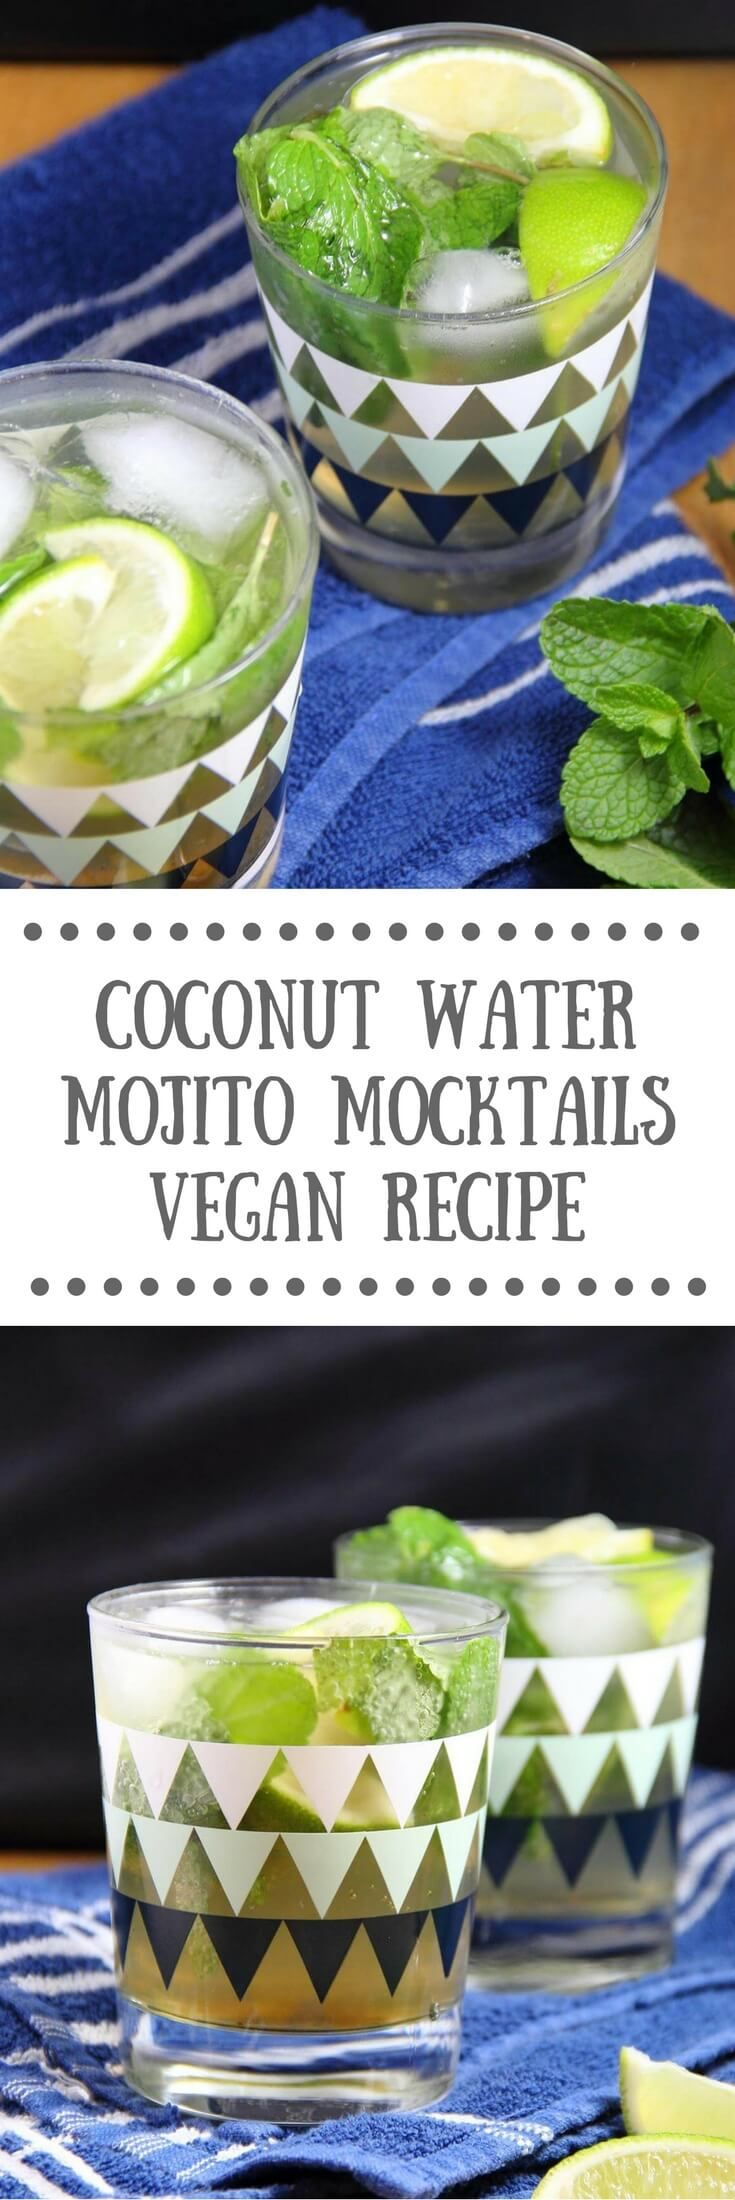 Coconut Water Mojito Mocktail | Healthy, vegan recipe & the perfect summer drink!